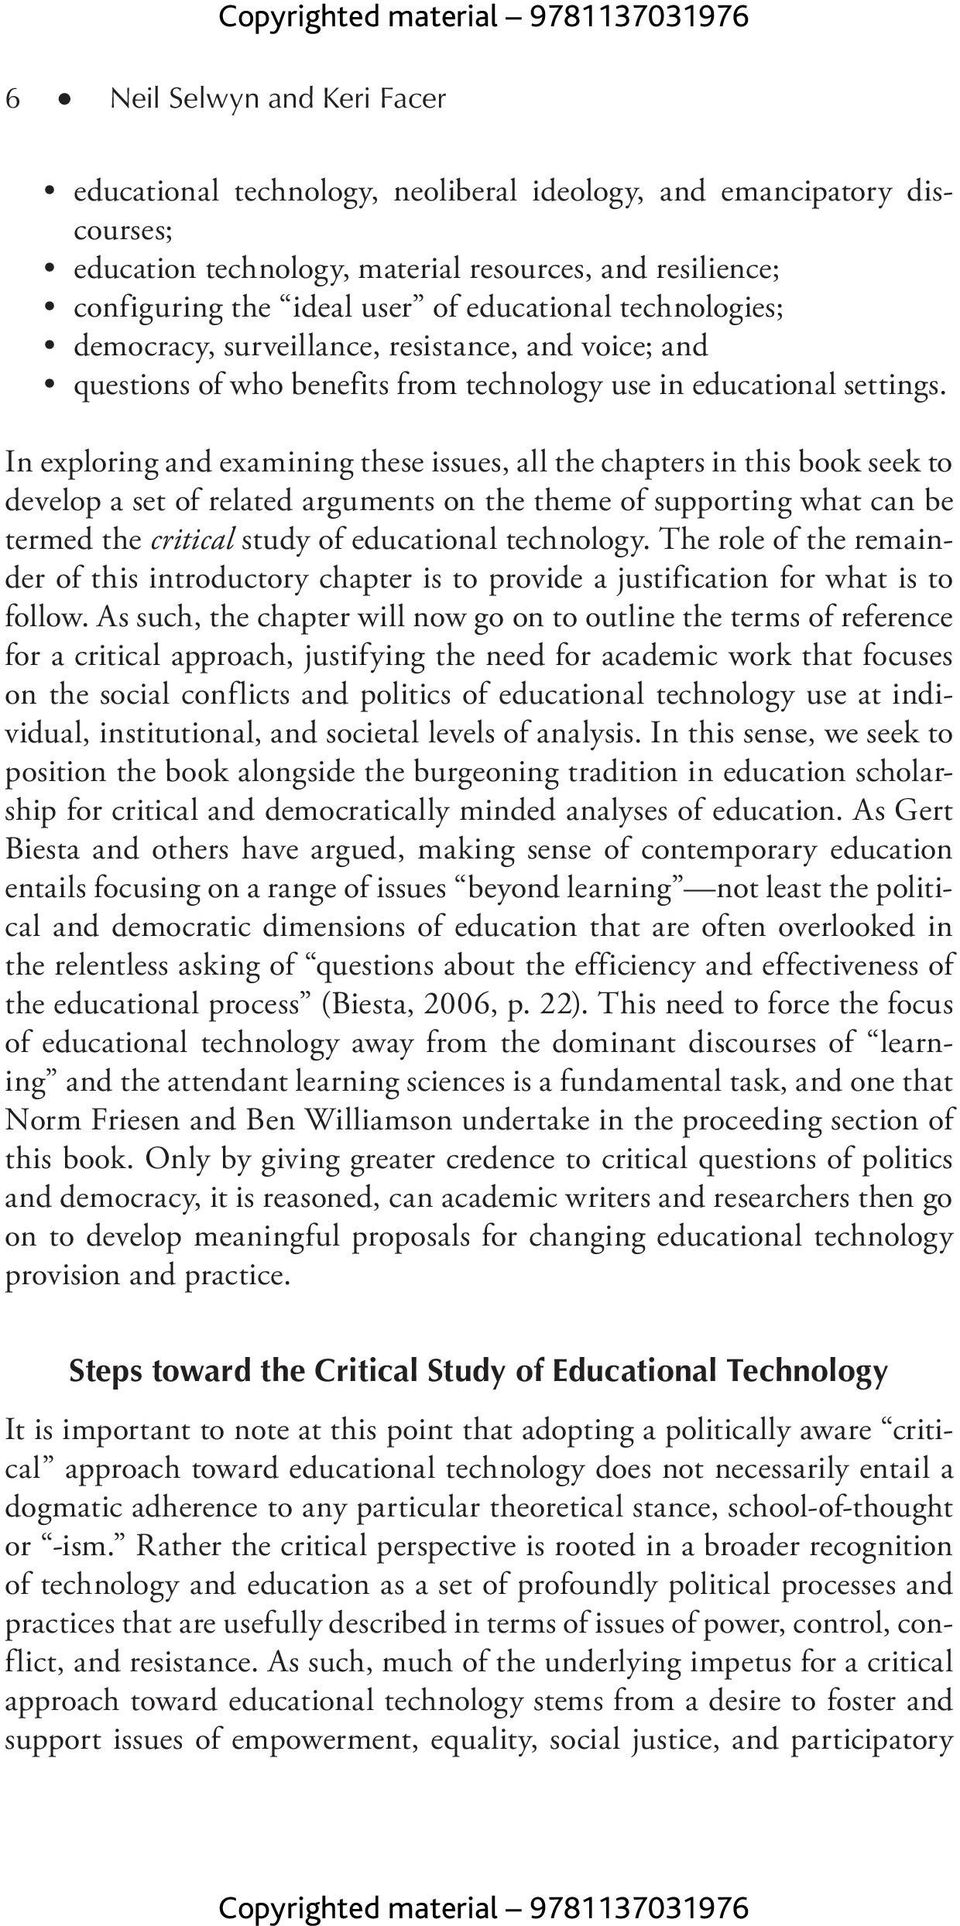 In exploring and examining these issues, all the chapters in this book seek to develop a set of related arguments on the theme of supporting what can be termed the critical study of educational